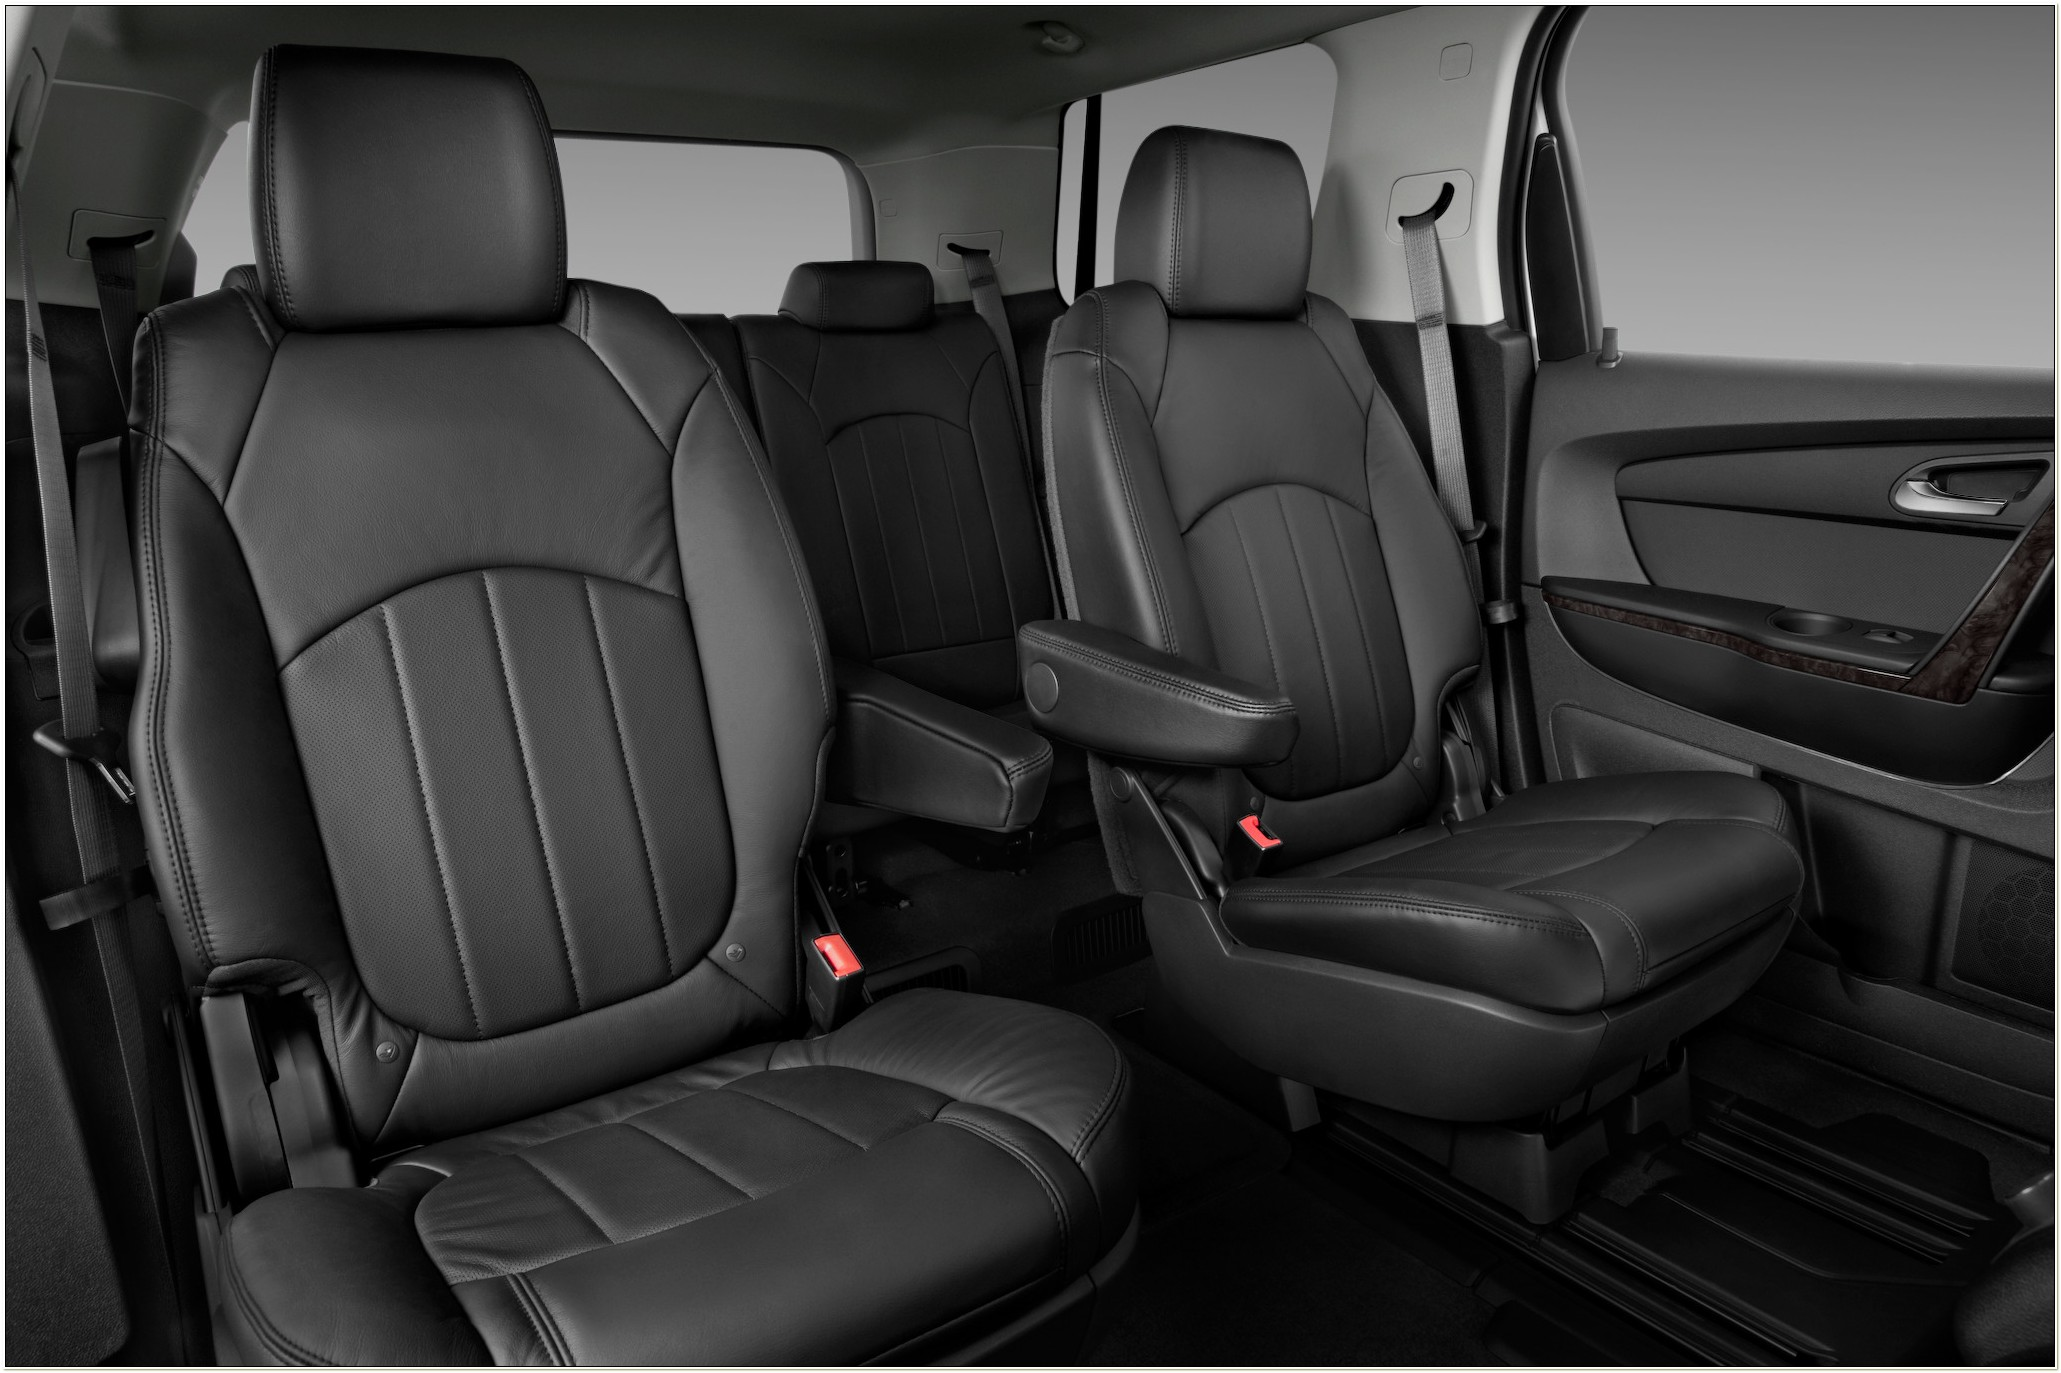 2012 Gmc Acadia Captains Chairs